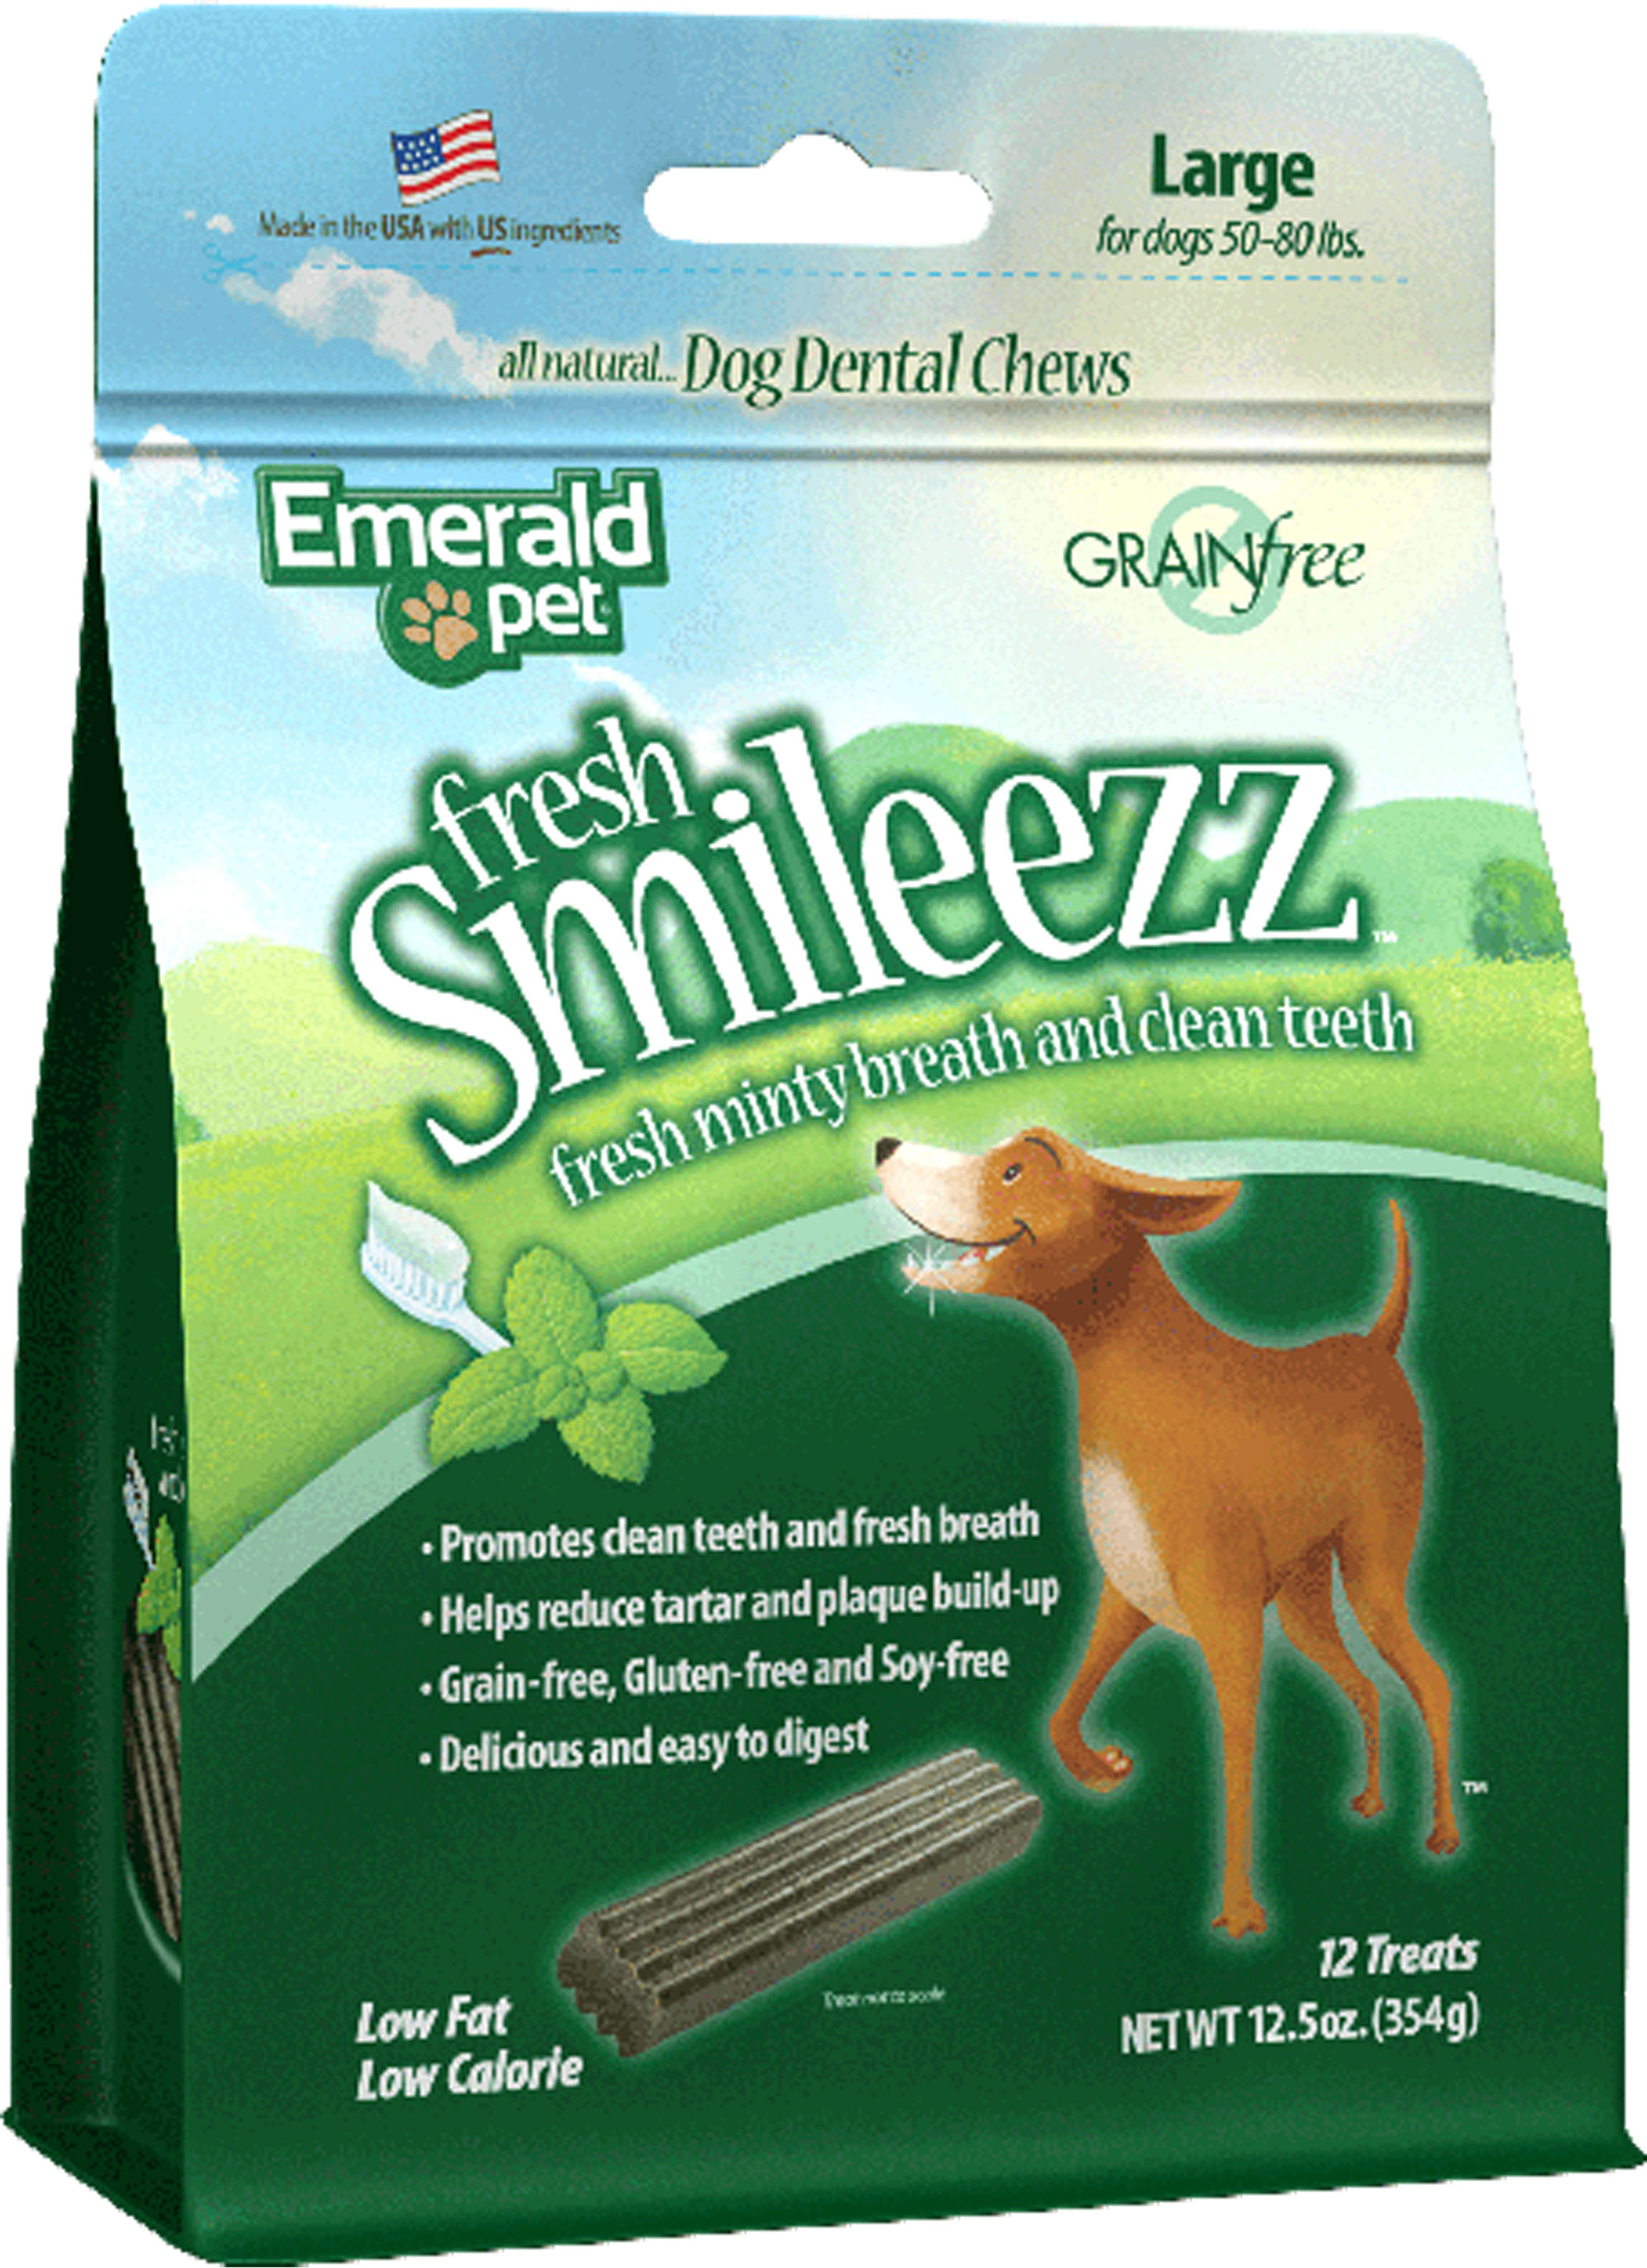 Emerald Pet Fresh Smileezz Grain-Free Large Dental Dog Treats, 12.5-oz